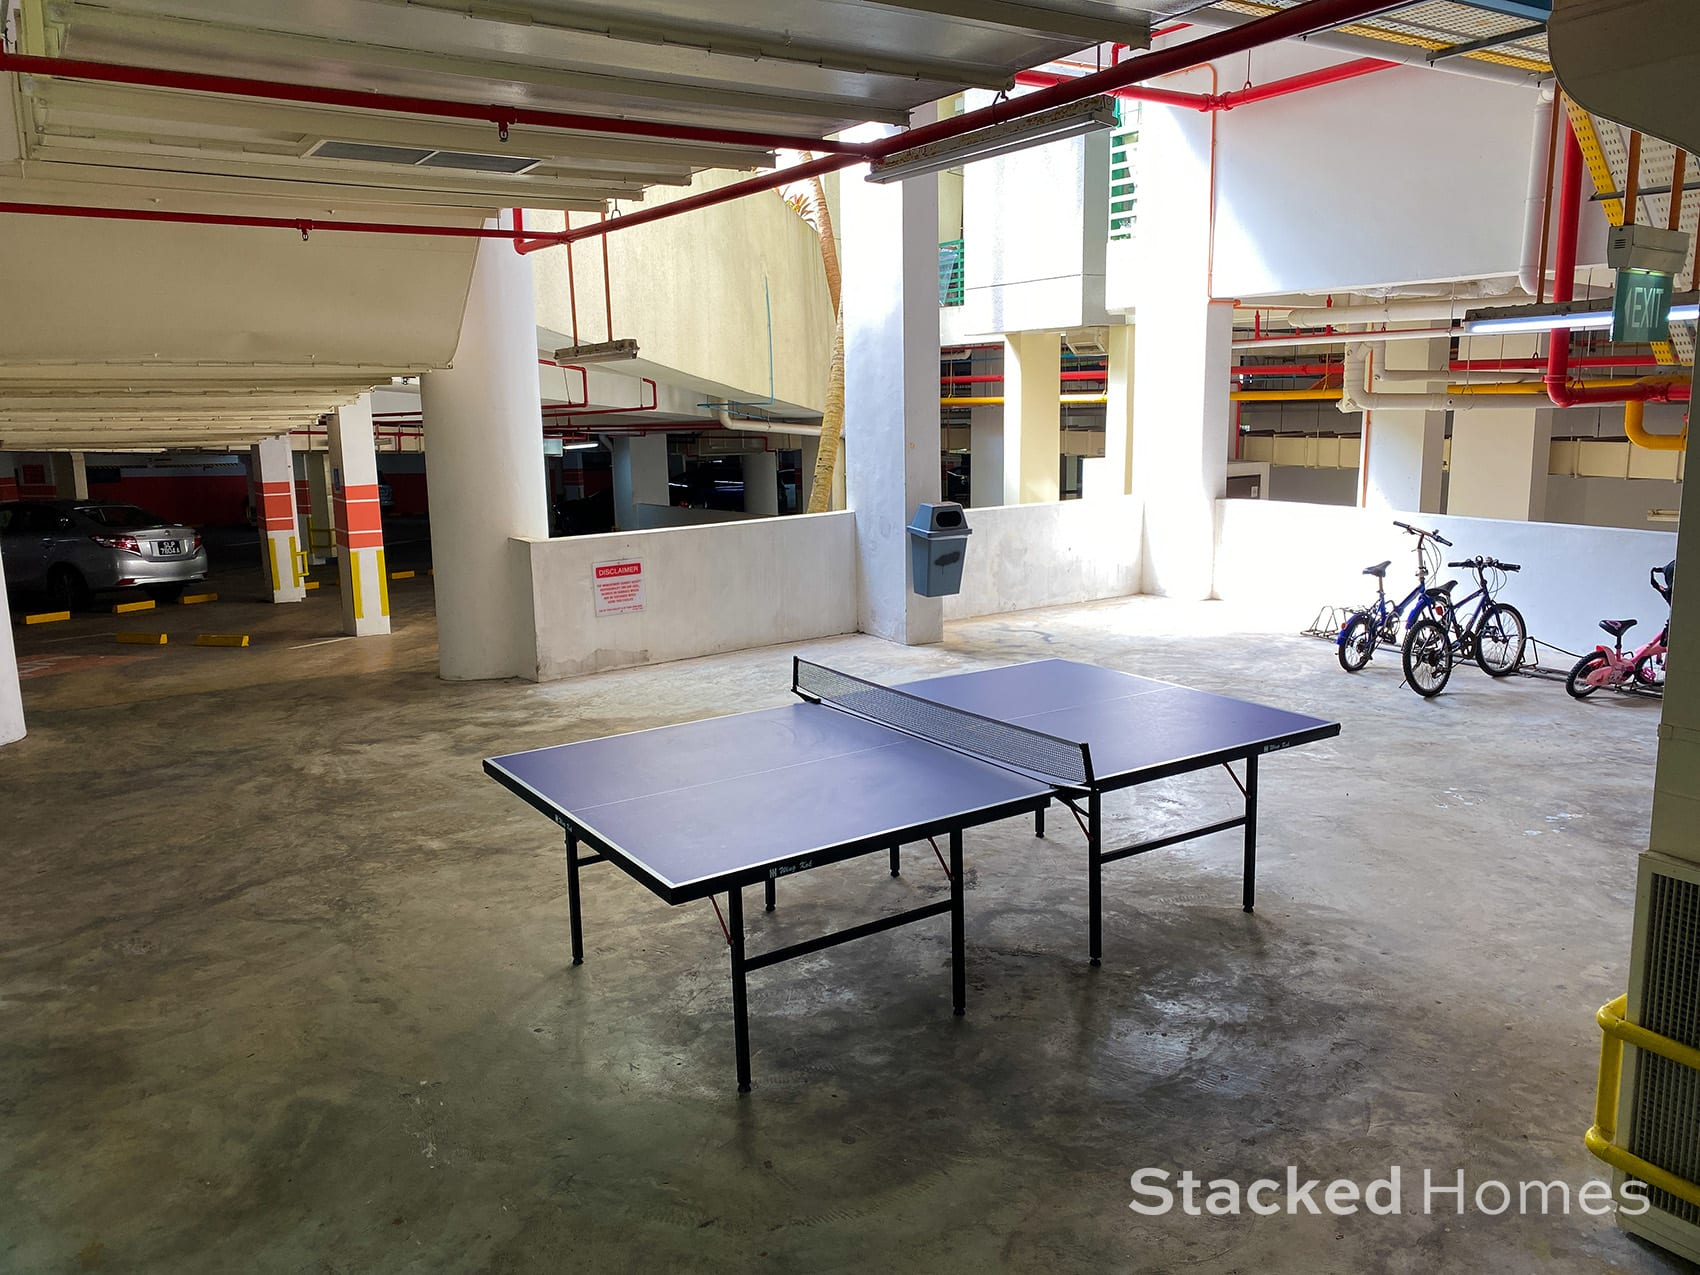 Signature park table tennis